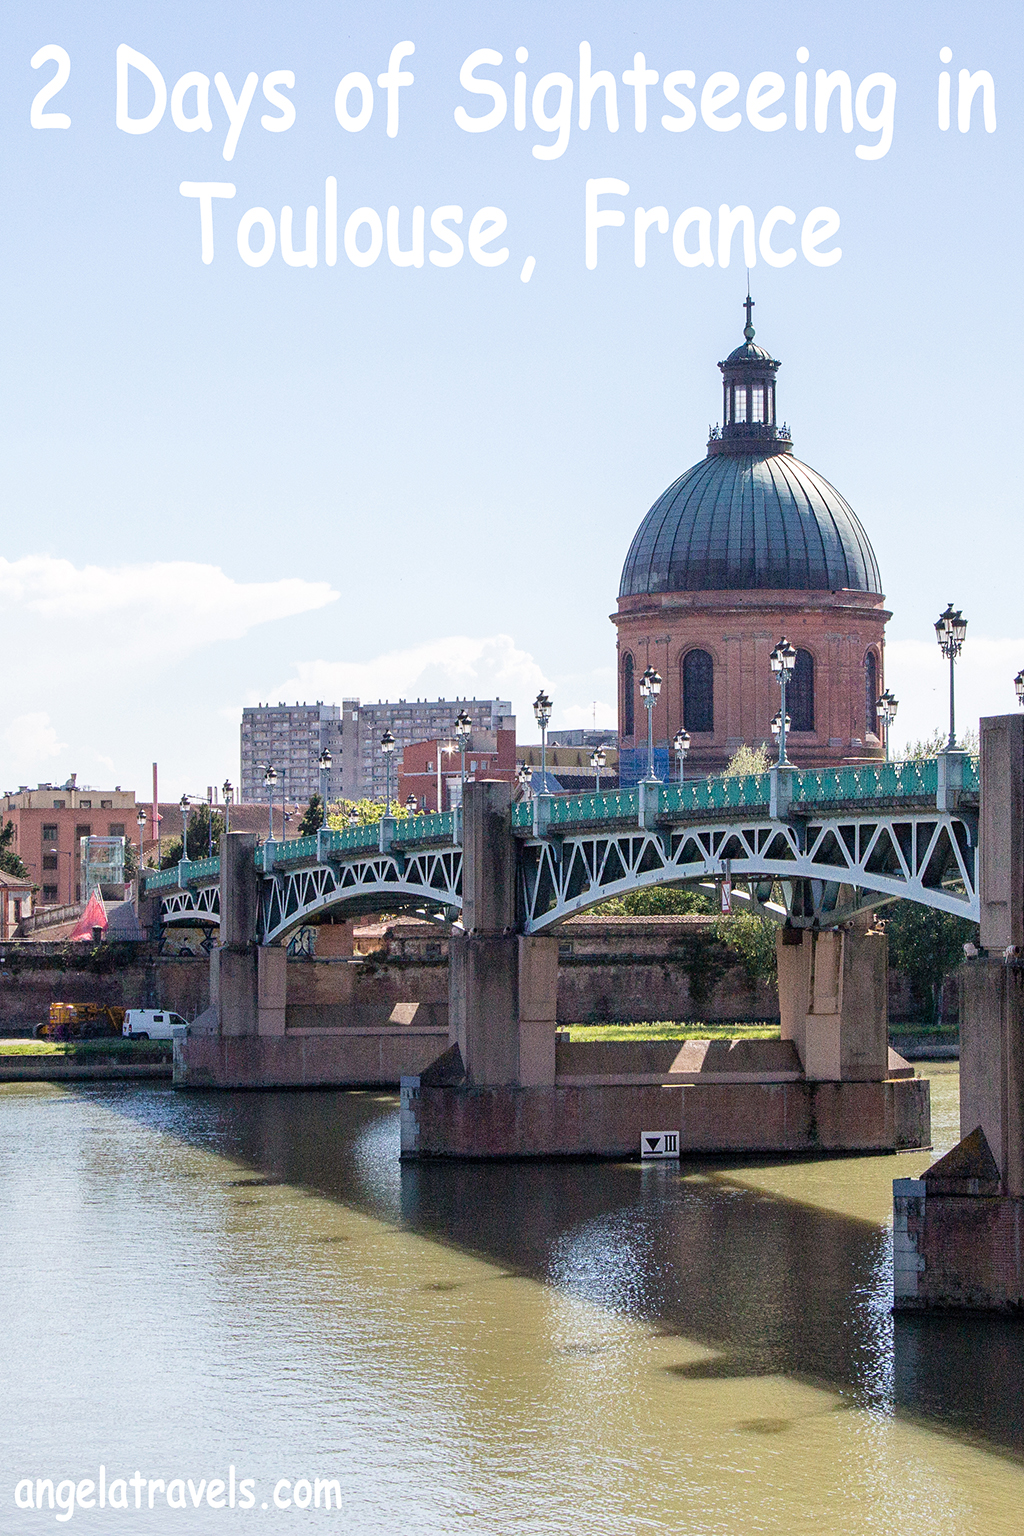 2 days sightseeing in Toulouse, France pinterest image